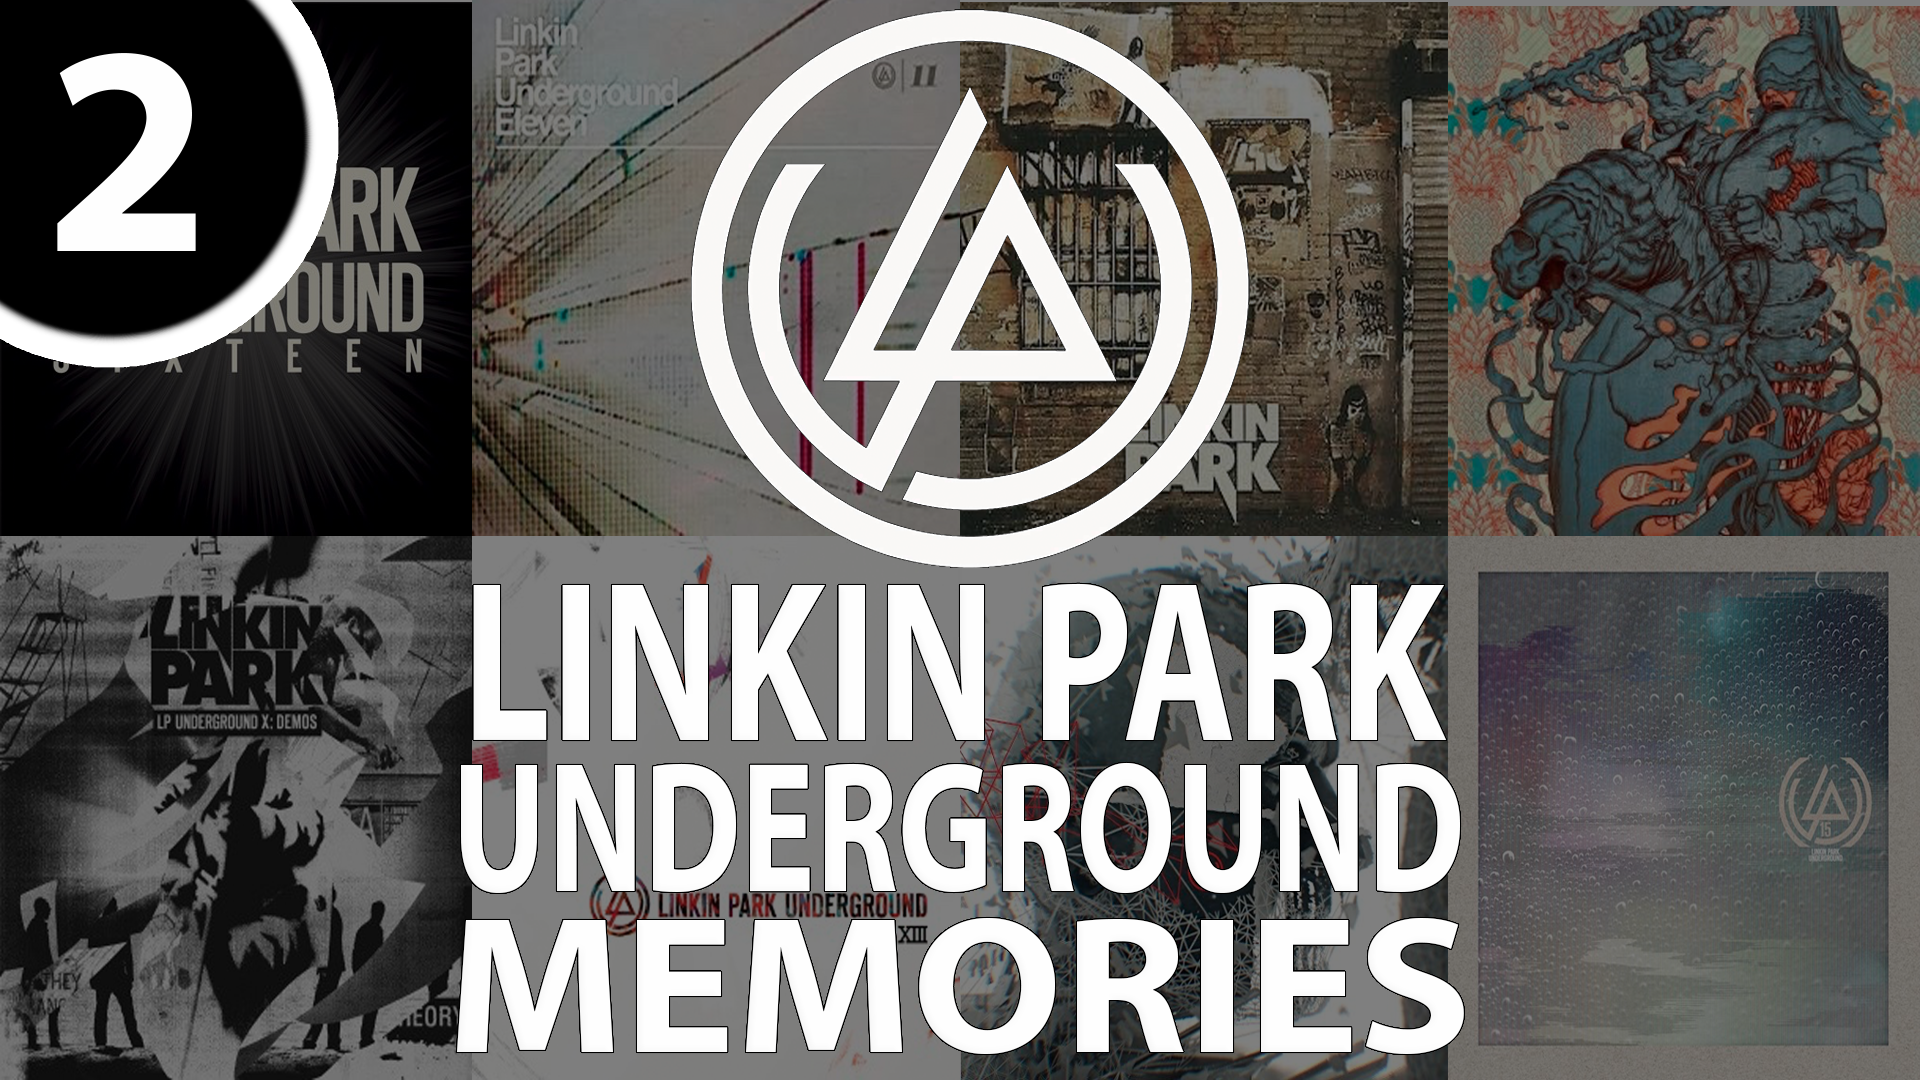 Linkin Park Memories